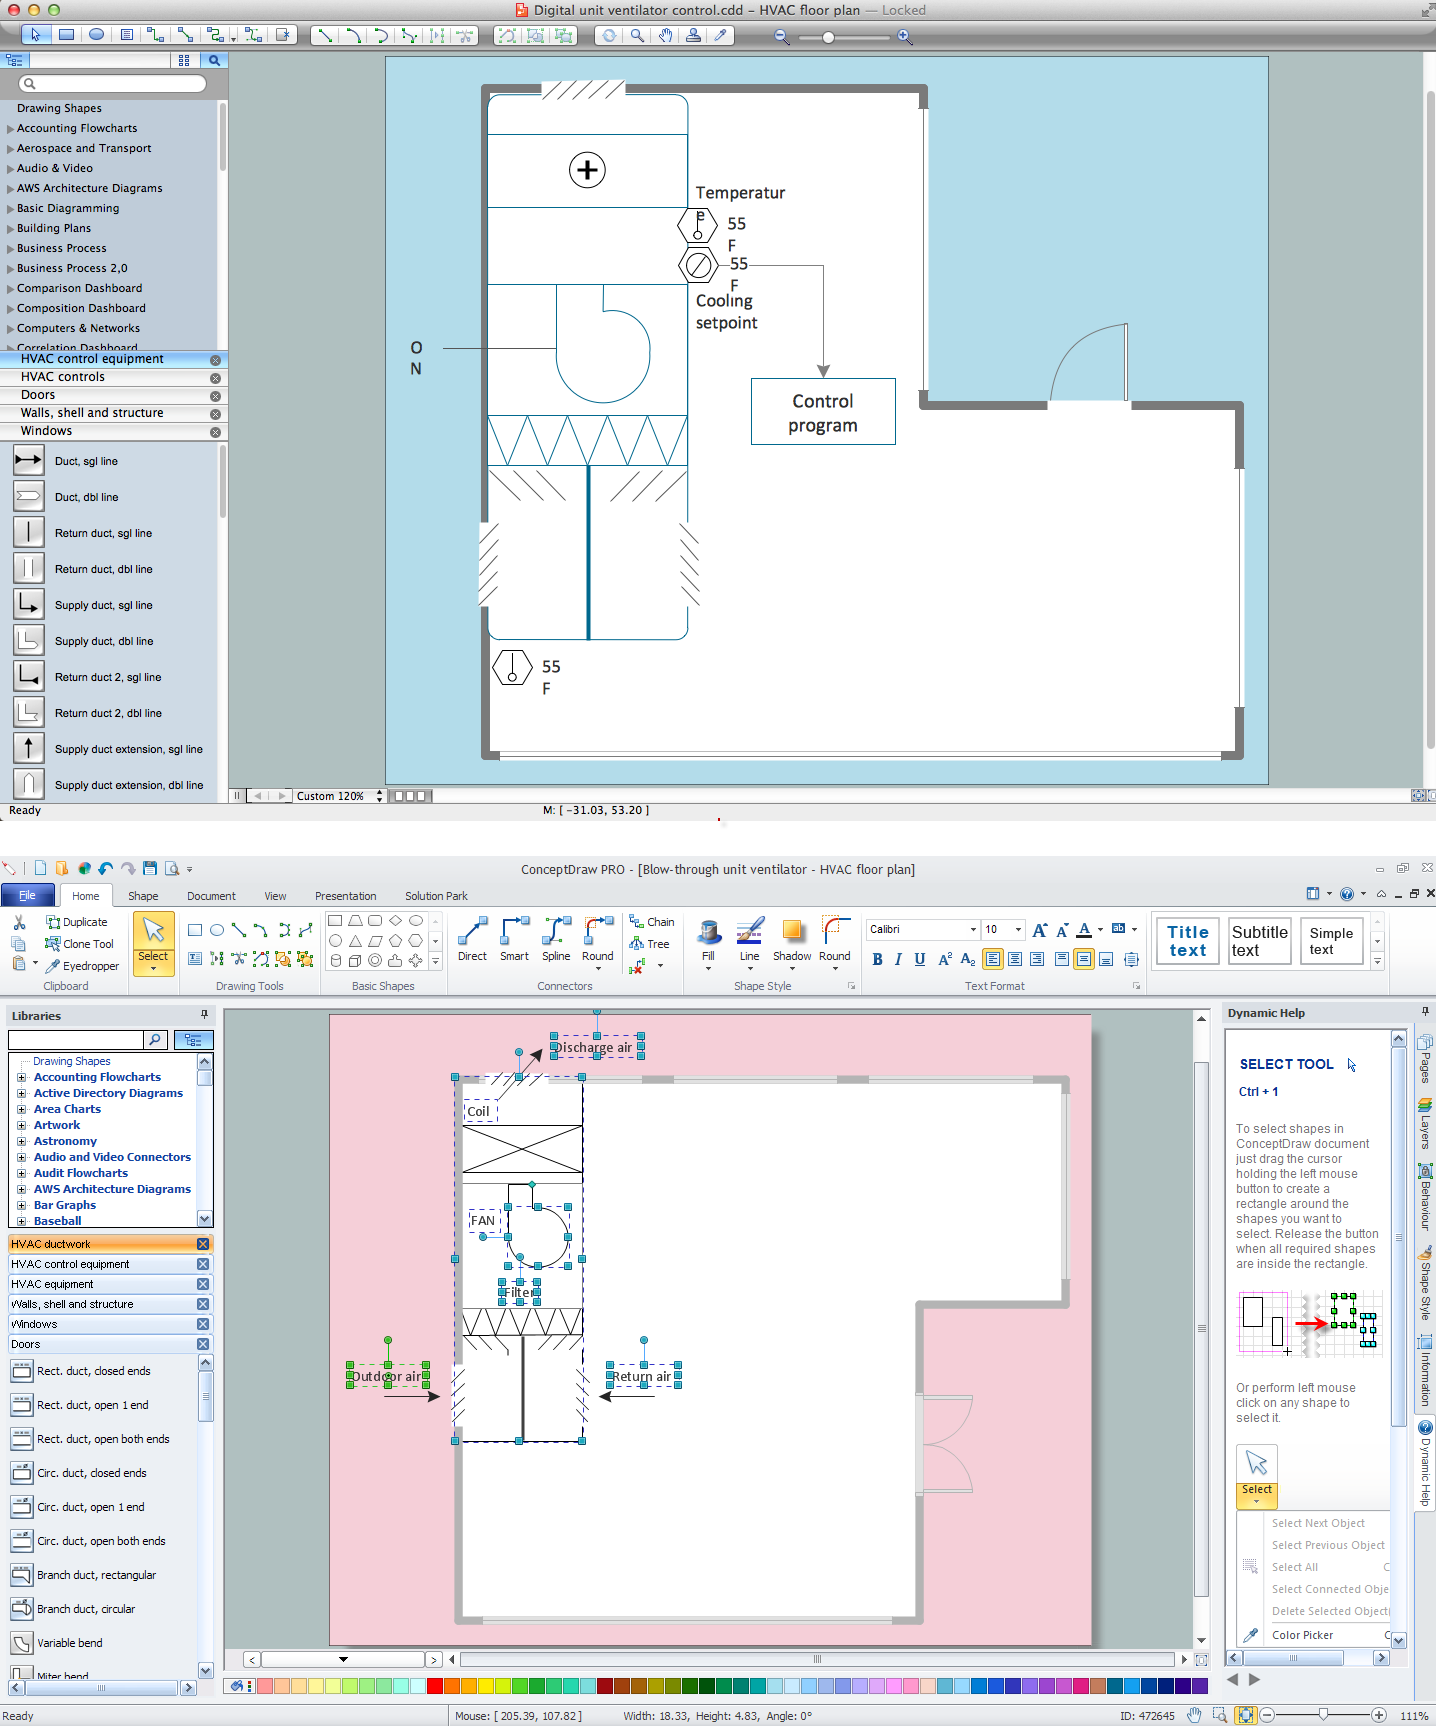 House Elrctrical Plan Software house electrical plan software electrical diagram software free wiring diagram creator at n-0.co